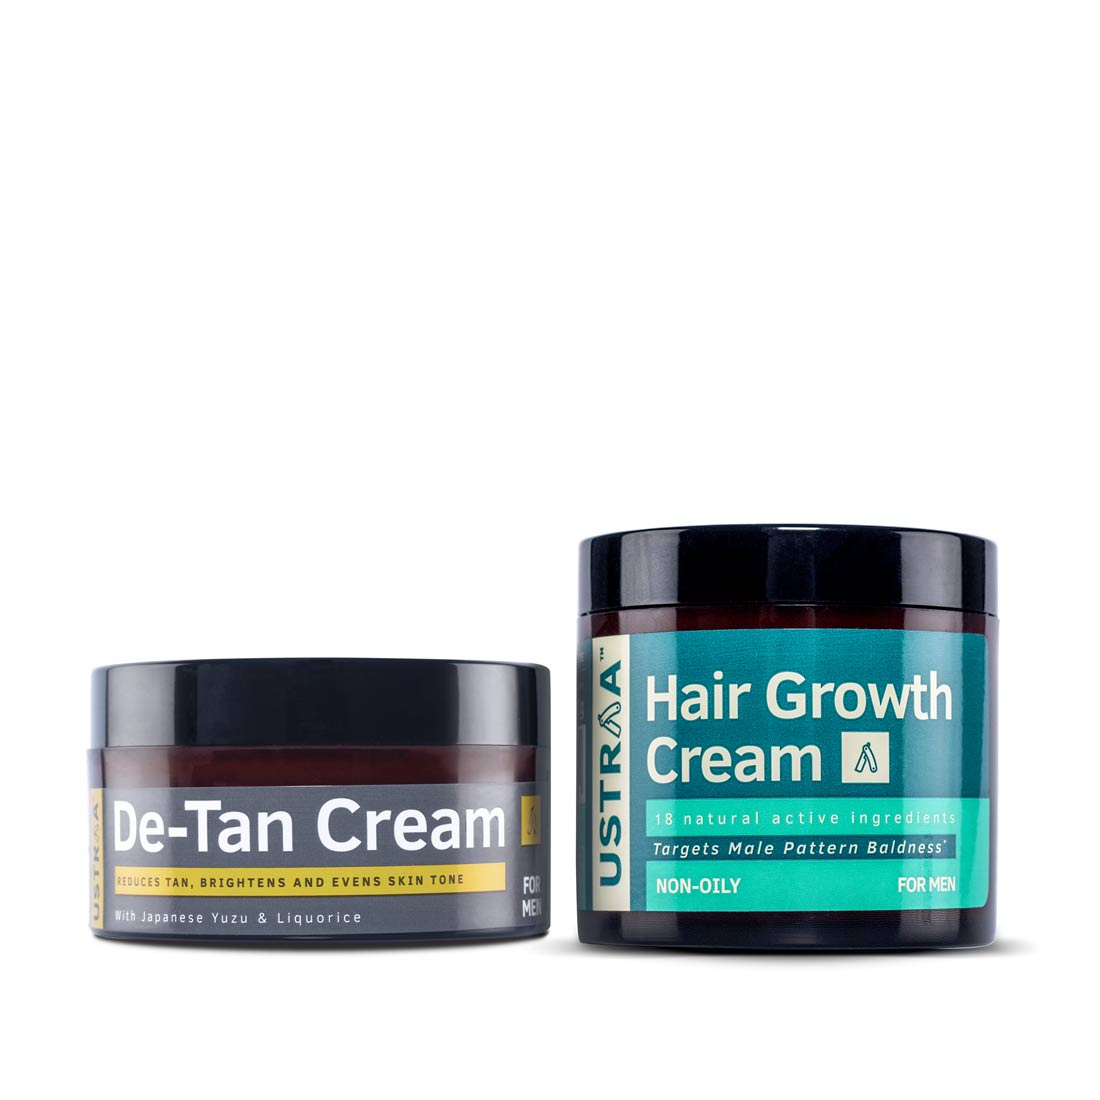 Hair Growth Cream & De tan Cream